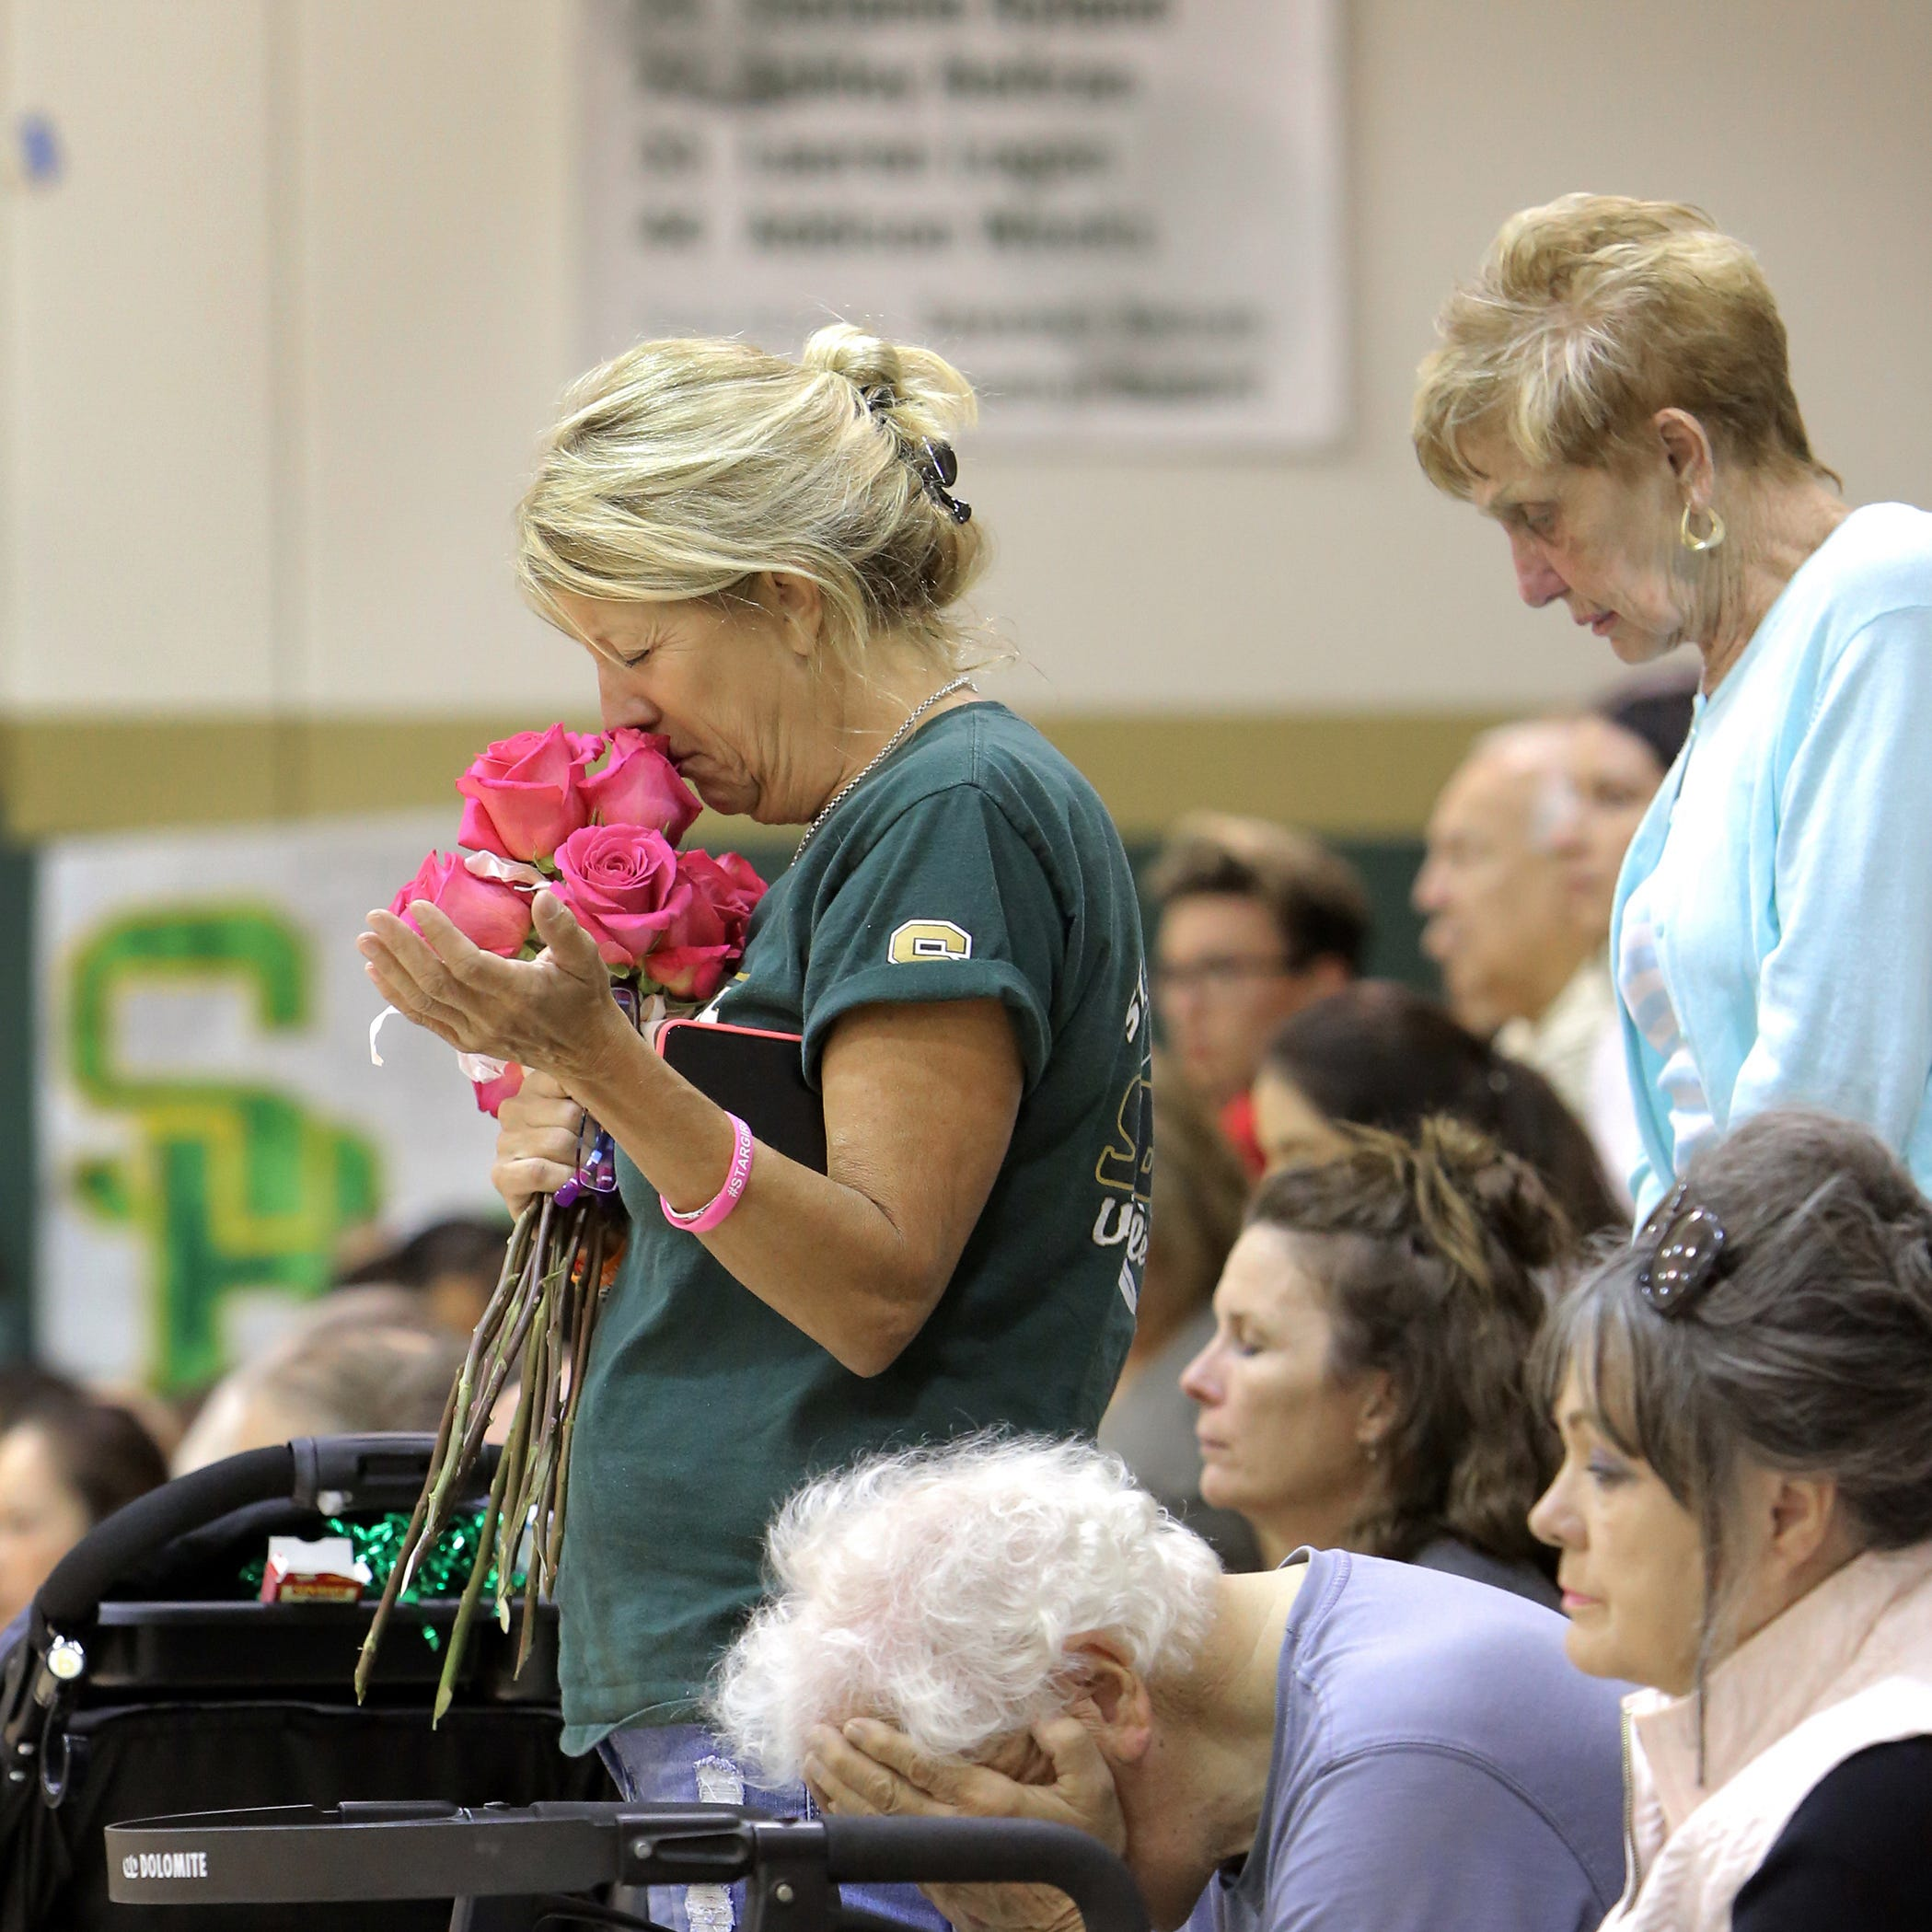 St. Bonaventure honors, remembers the life of Kirra Drury